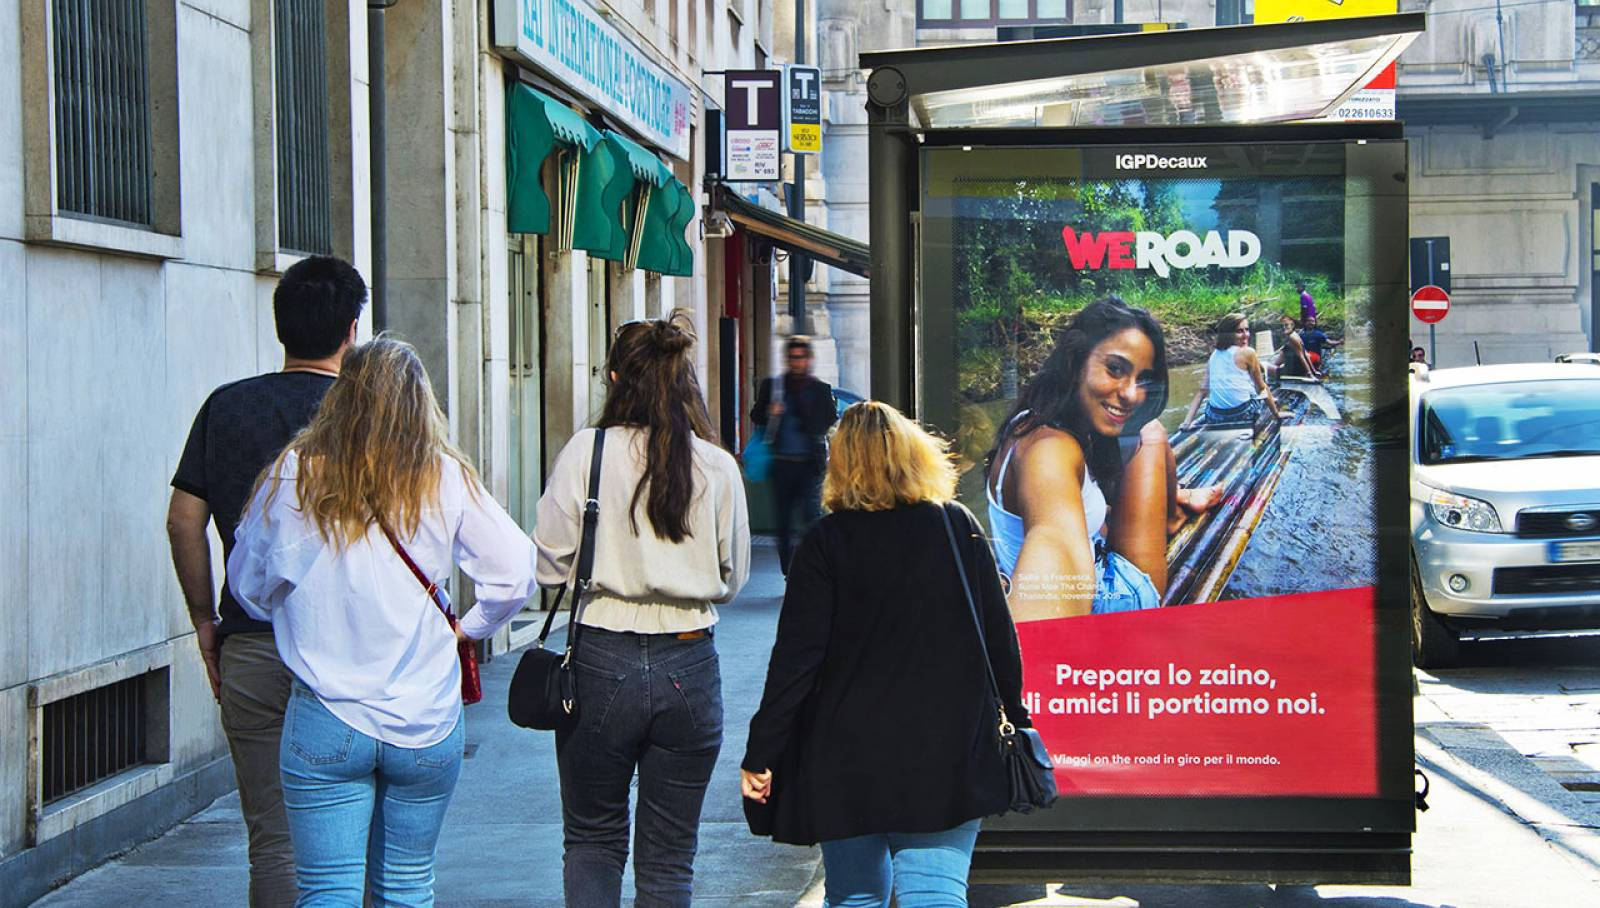 OOH advertising IGPDecaux Bus Shelters for WeRoad in Milan